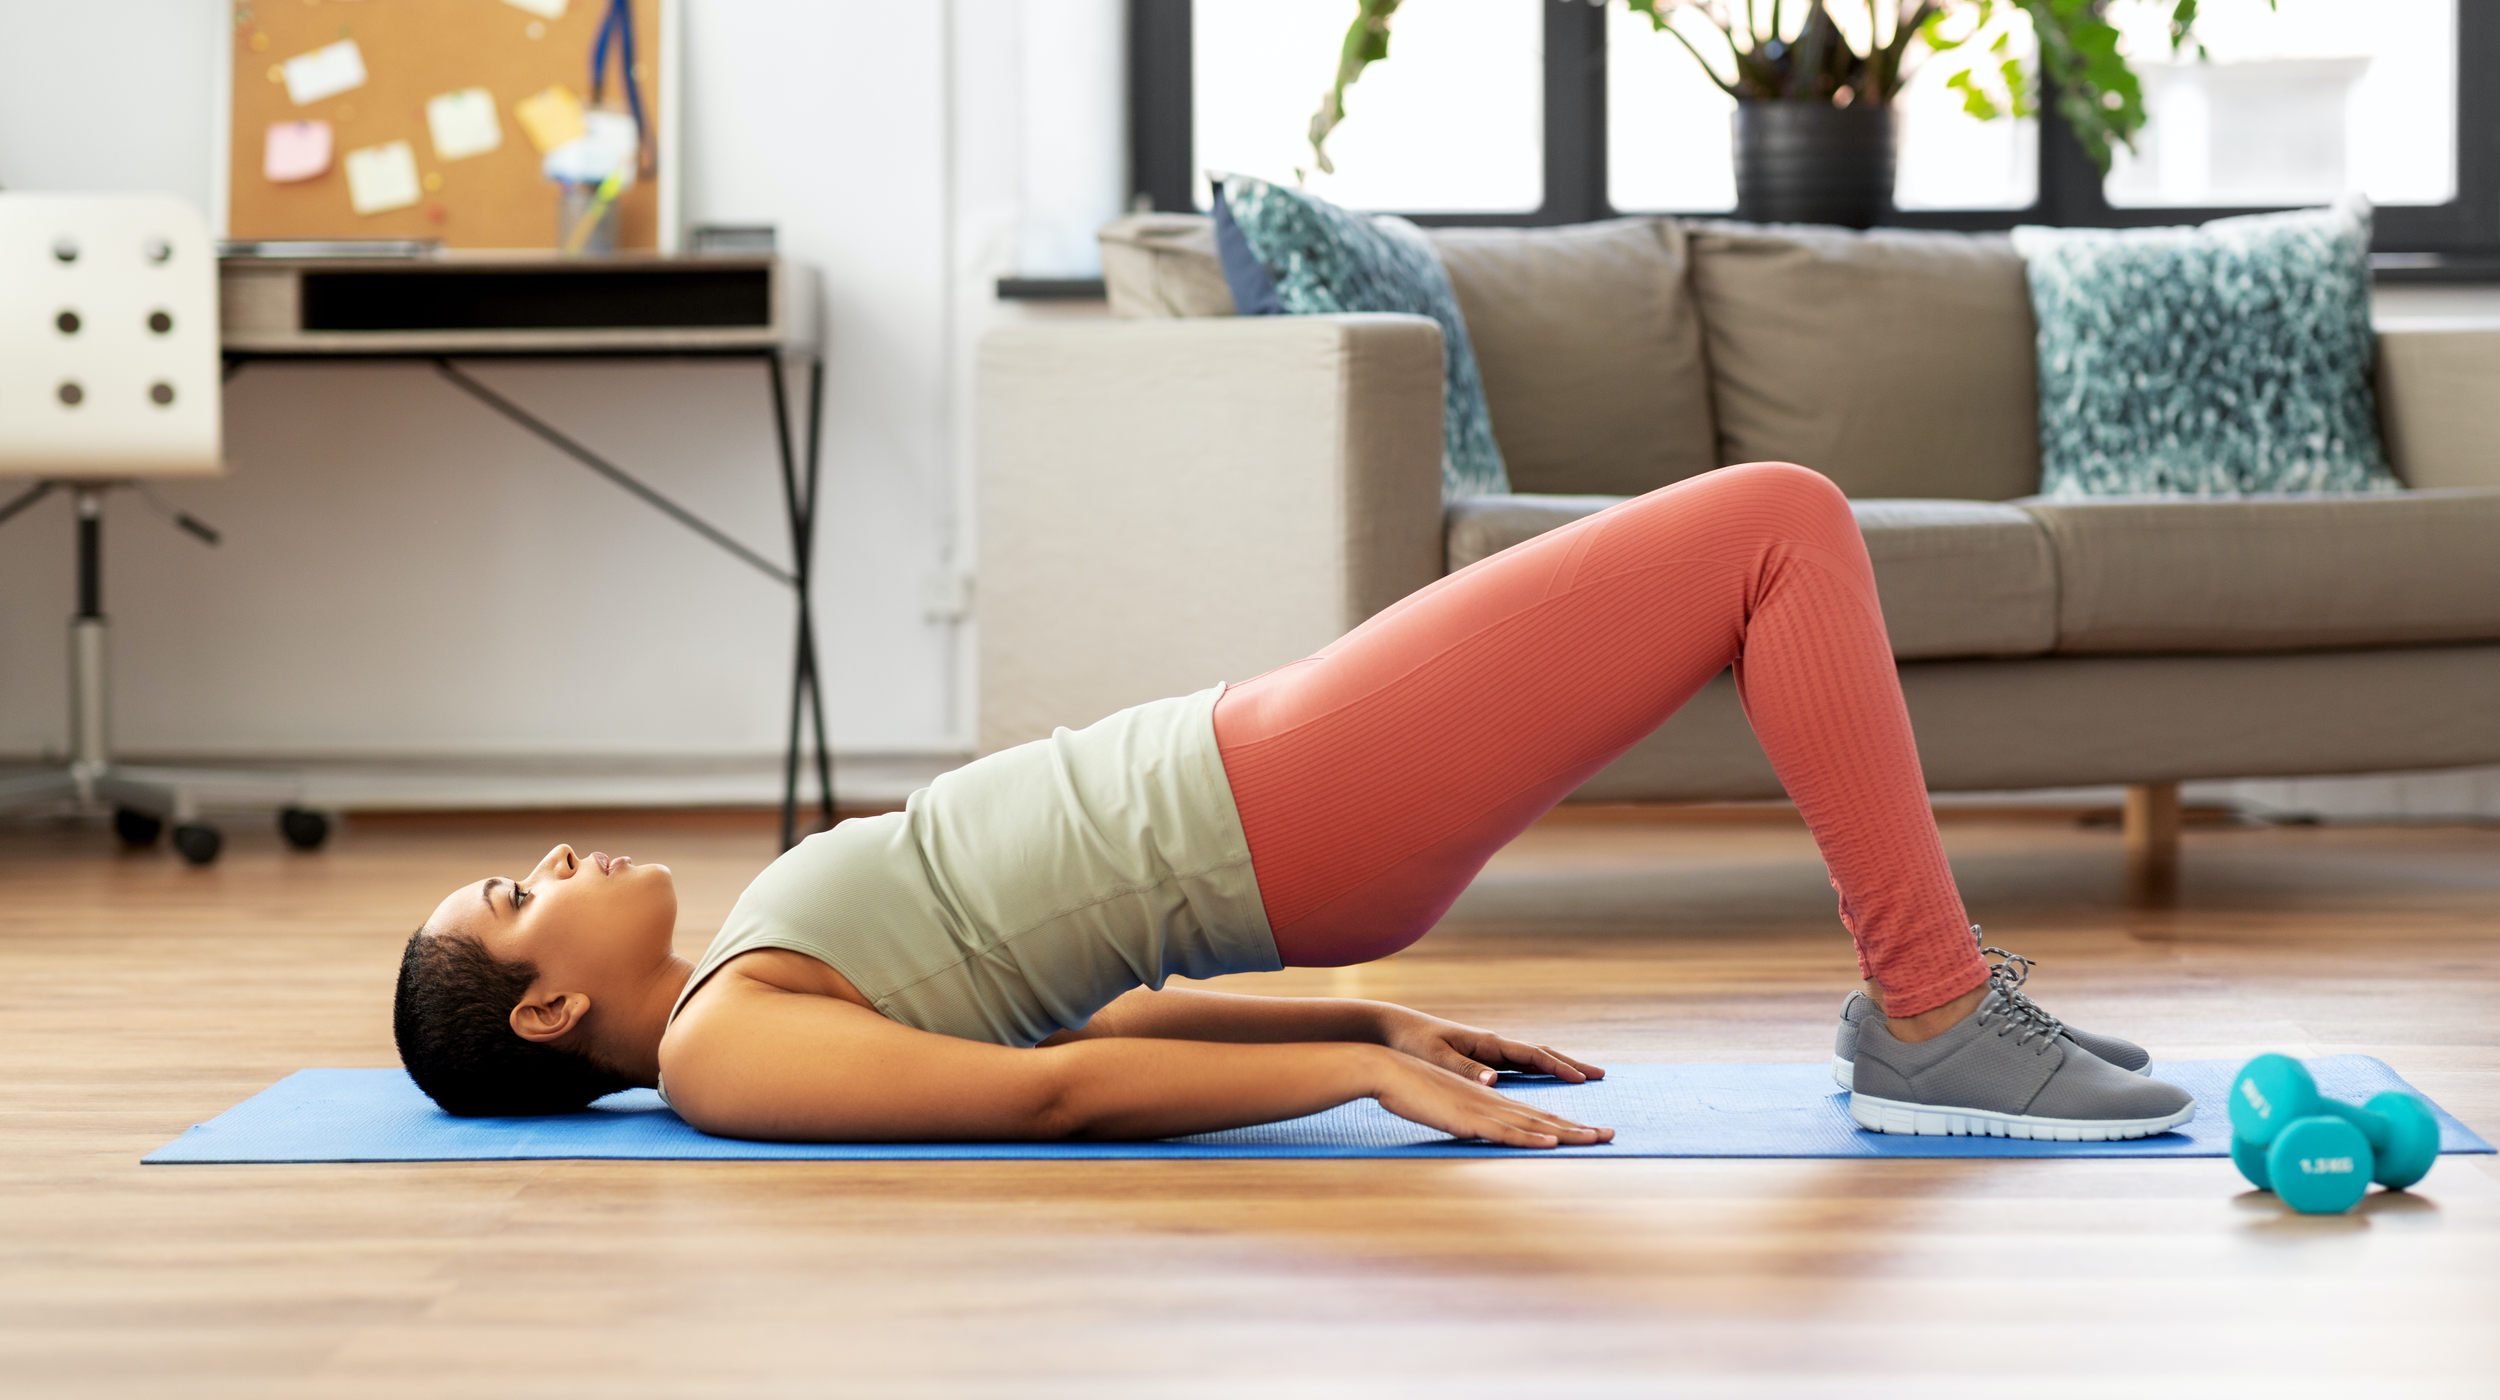 3 Simple Exercises to Alleviate Your Back Pain